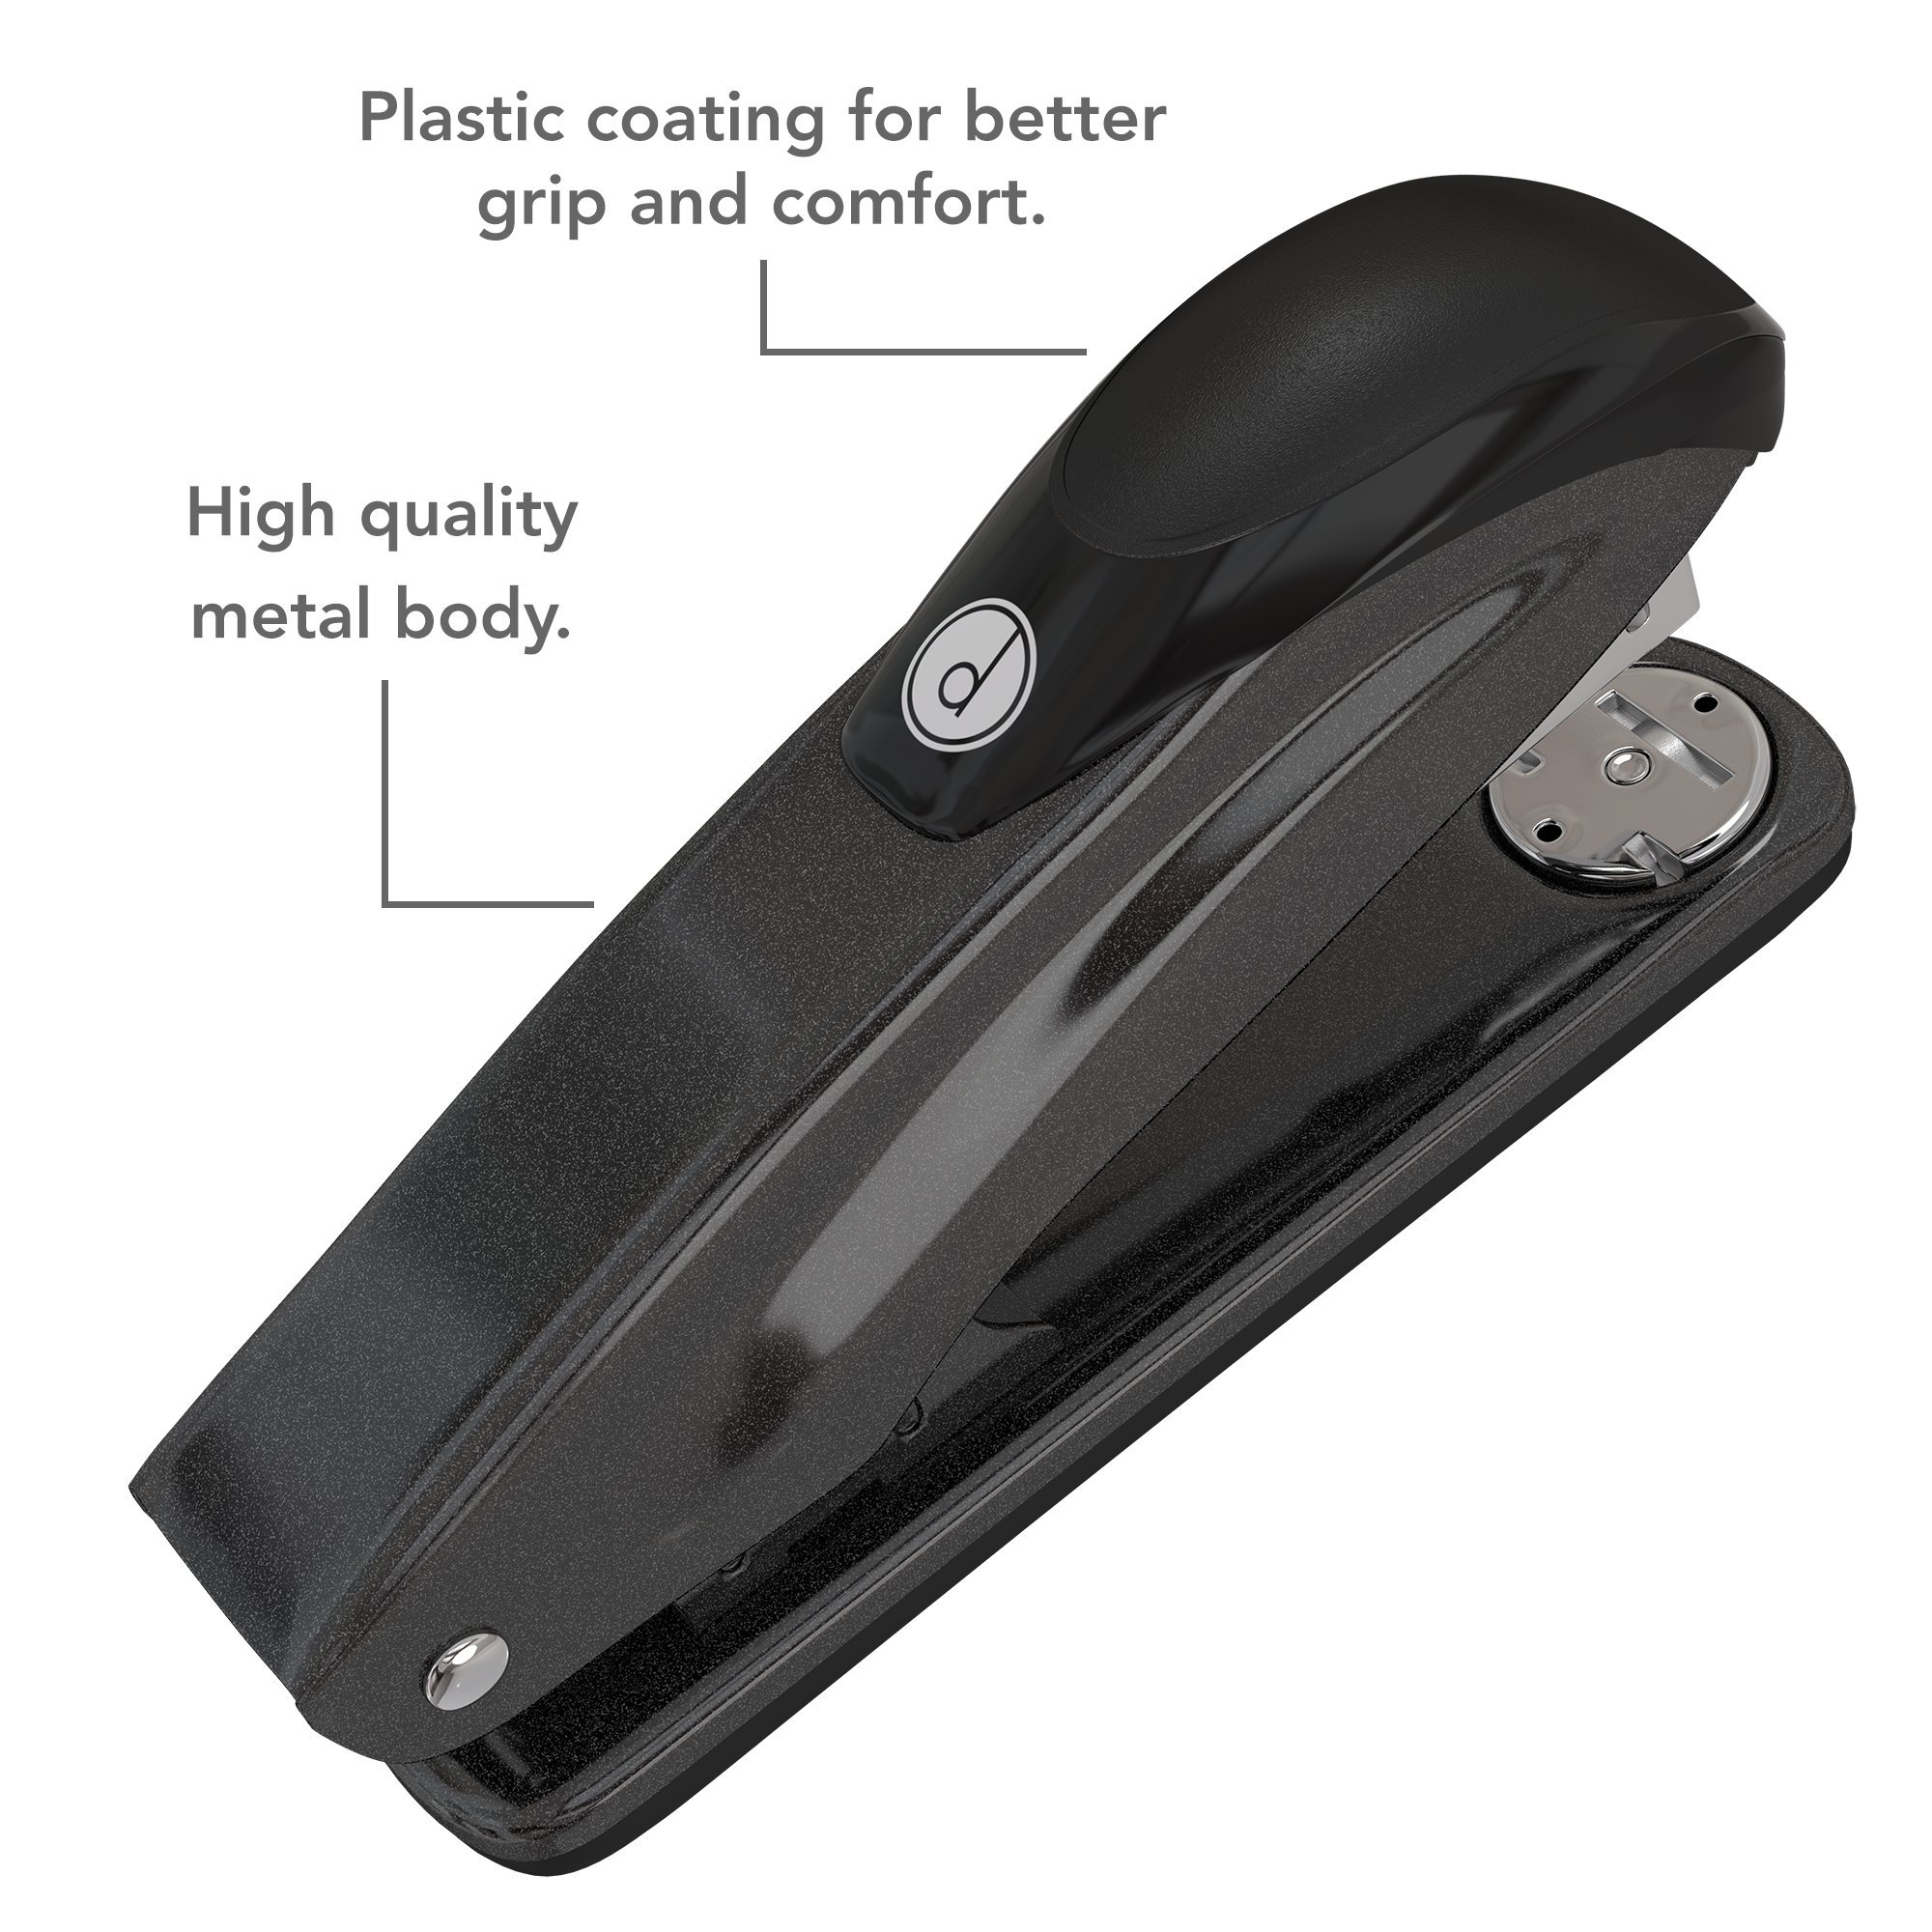 Desk Stapler Set (4 Pack) for Office, School and Home - Small, Compact, Effortless & Ergonomic Metal Design - 20 Sheets Standard 24-26/6 Size - Black by desired tools (Image #2)